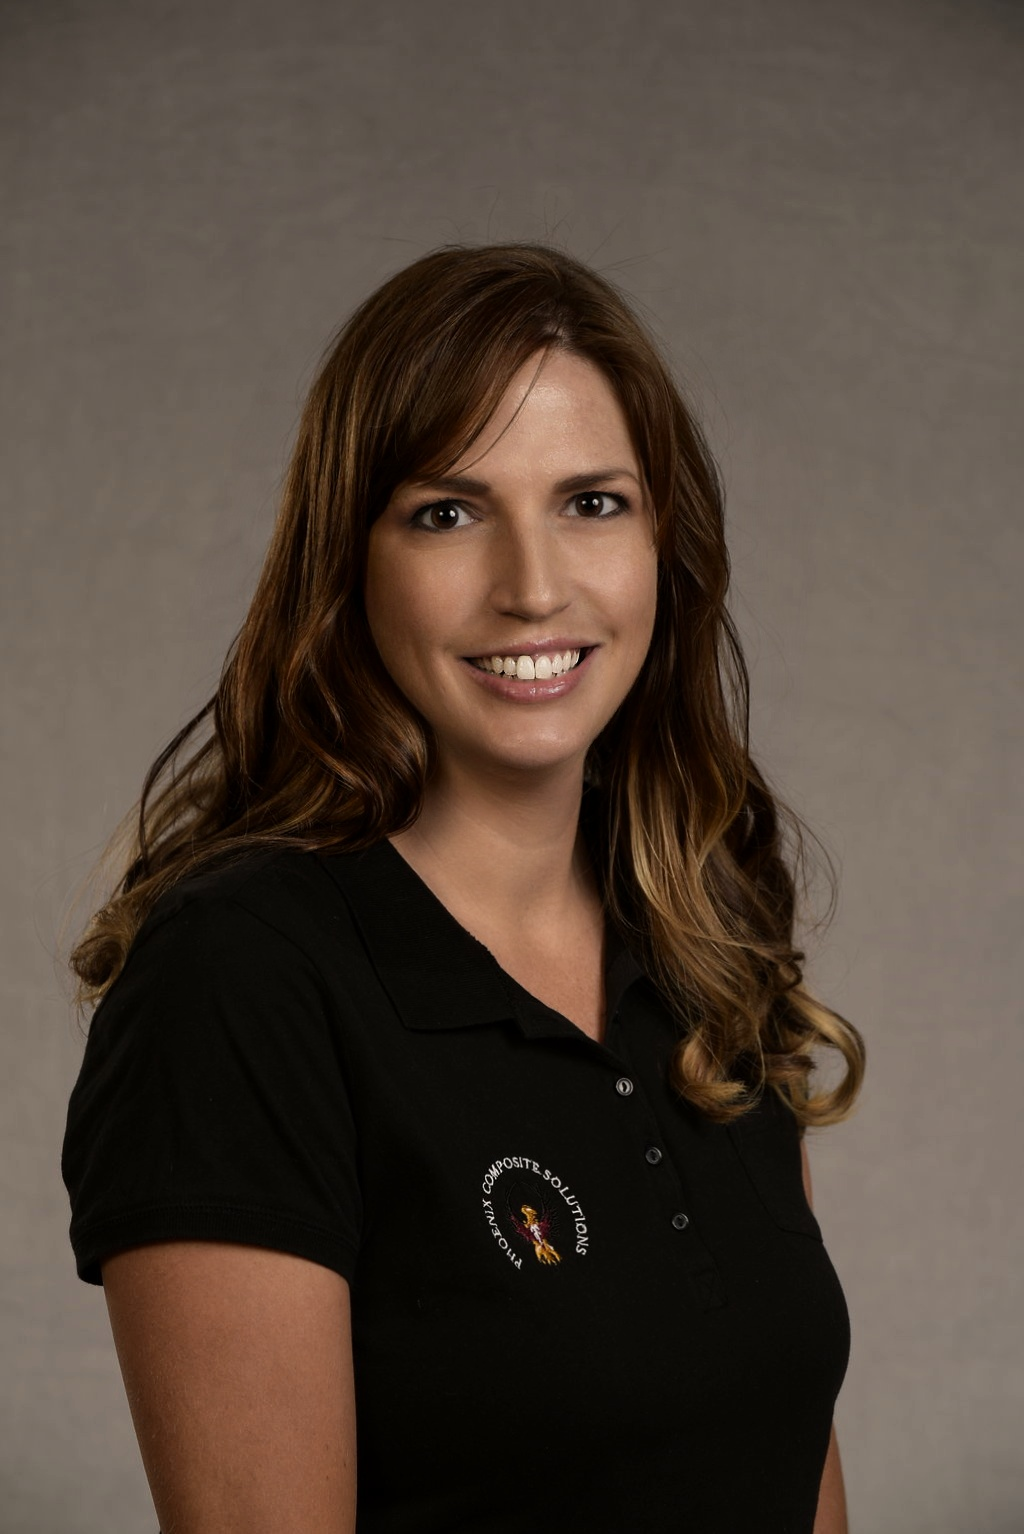 Division Manager Jill Brown    Email:    jill.brown@phoenix-mi.com    Phone: 989-739-7108 ext 215 Cell: 989-820-8989